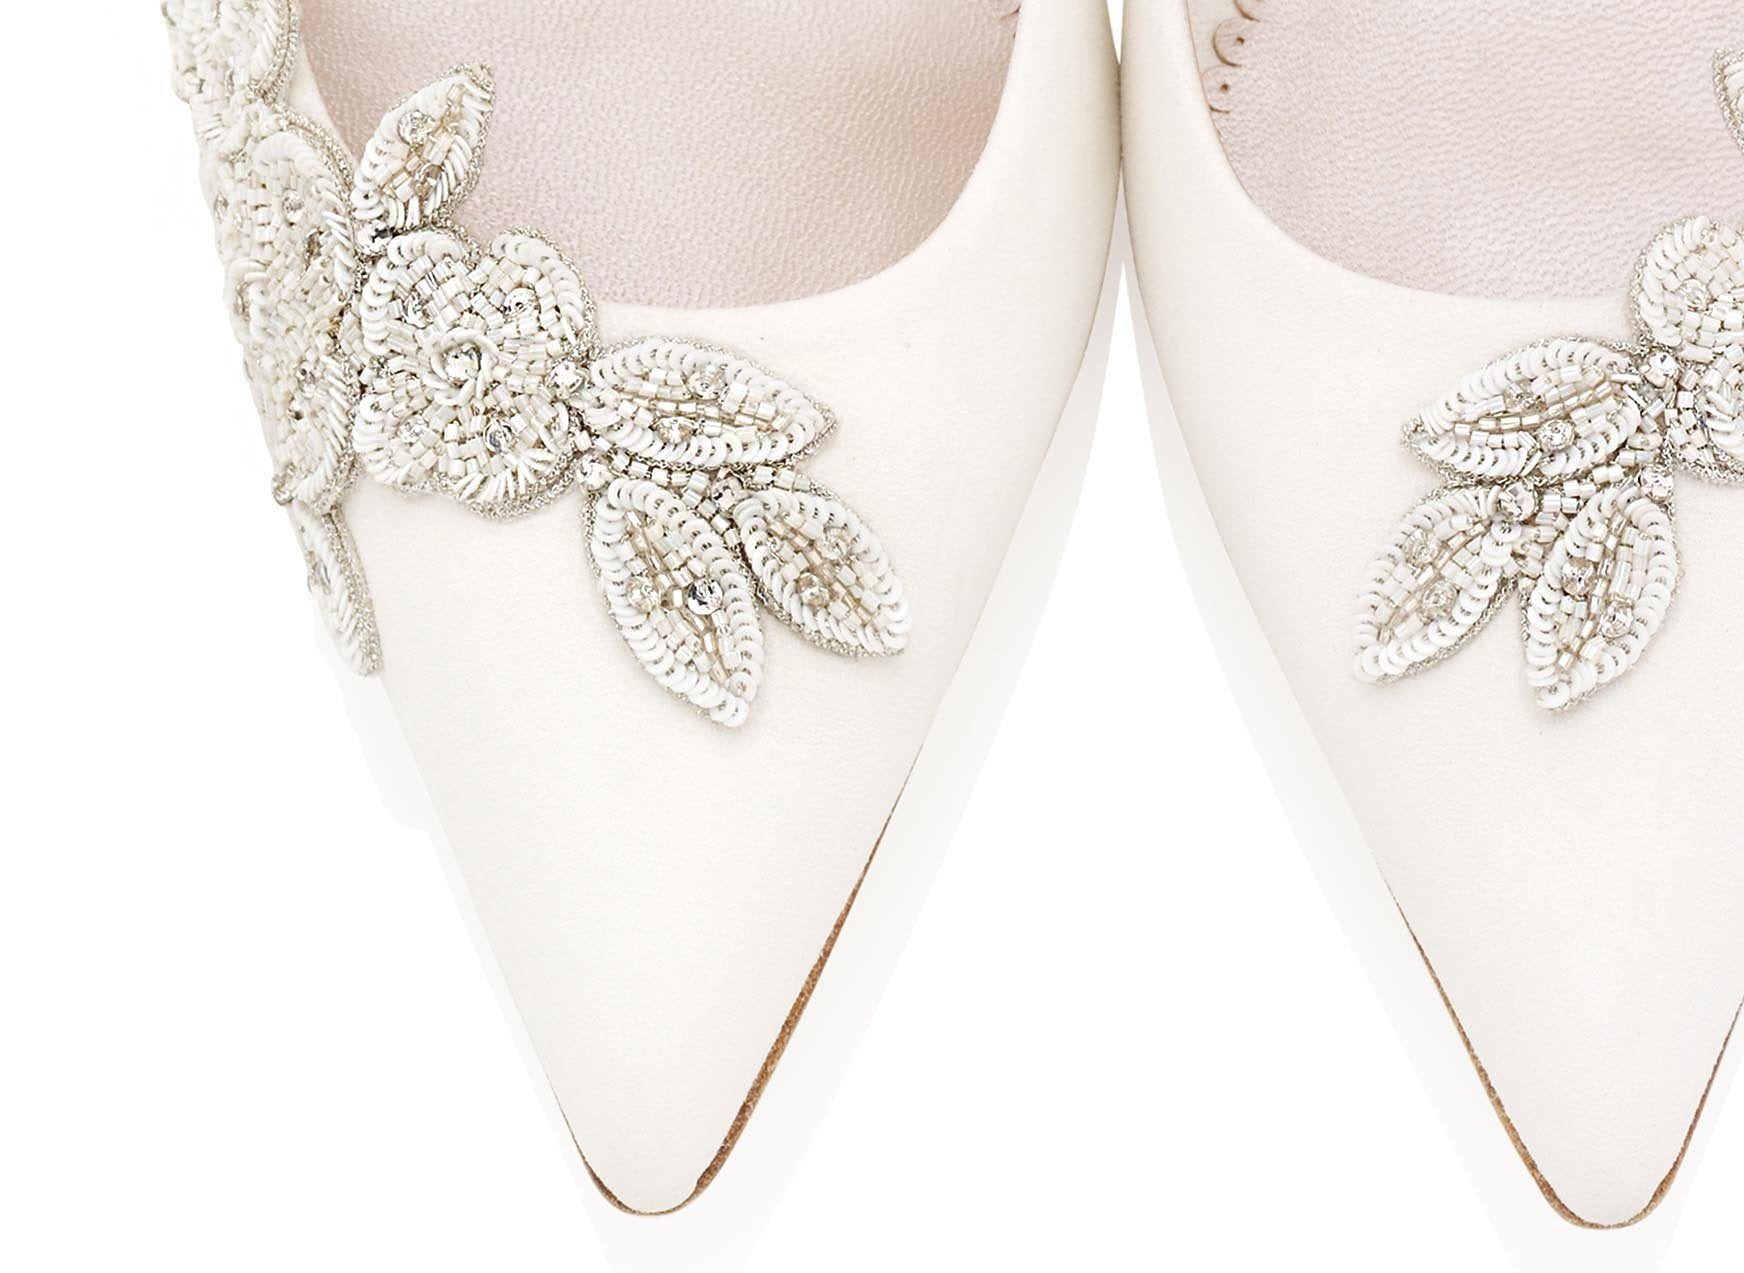 Isadora Ivory Elegant Bridal Shoes By Emmy London Close Up of Toes & Details